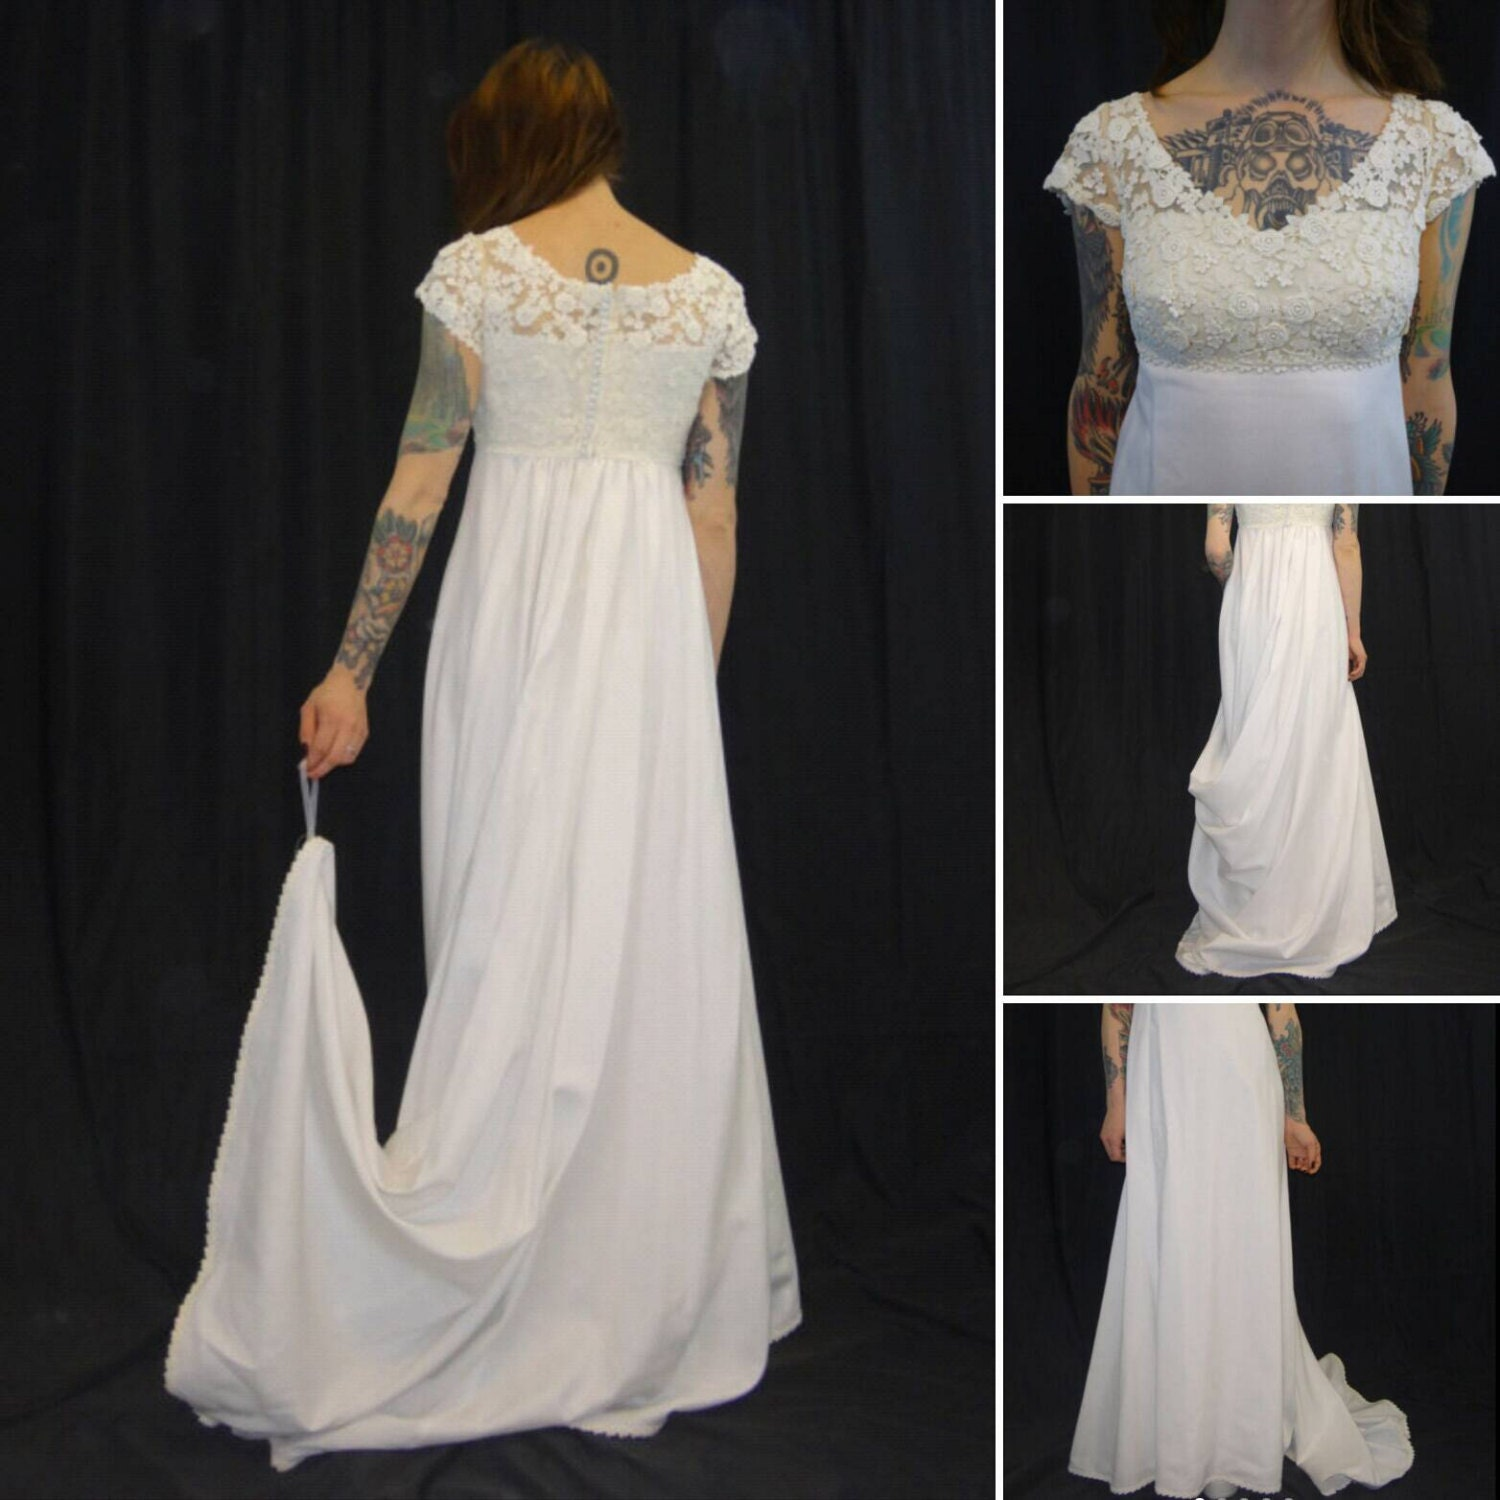 Vintage Wedding Dresses 1960s: Vintage 1960's Teeny Wedding Dress Made By Priscilla Of